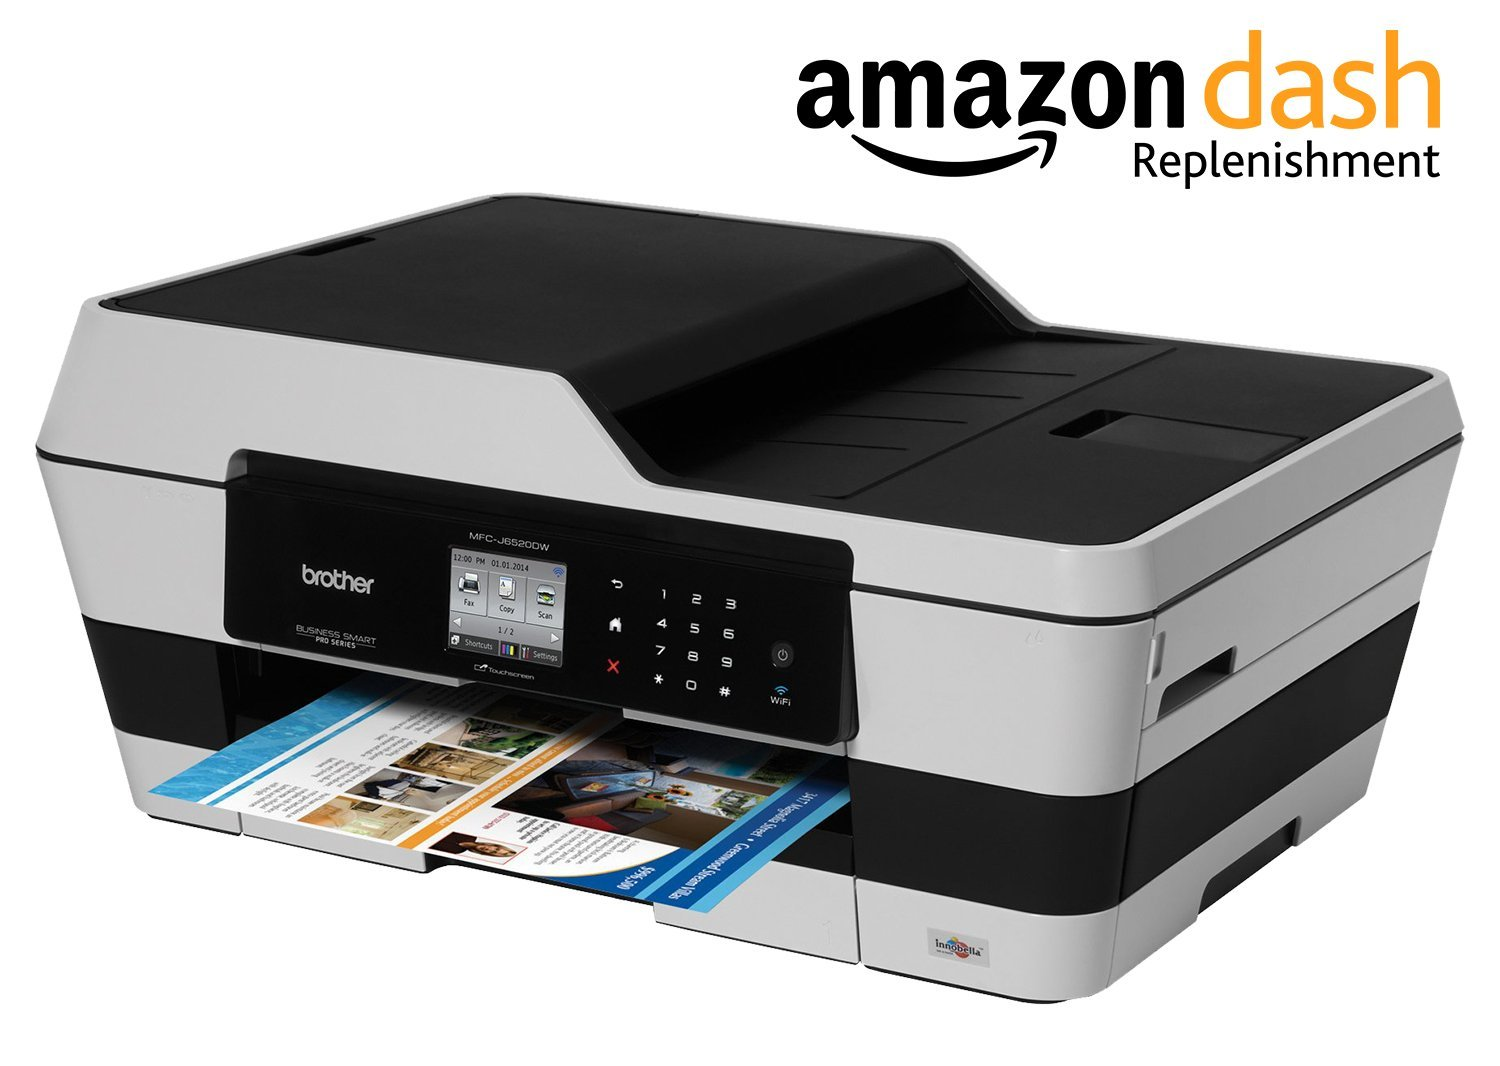 Amazon Brother Printer MFC J6520DW Wireless Color With Scanner Copier And Fax Dash Replenishment Enabled Electronics